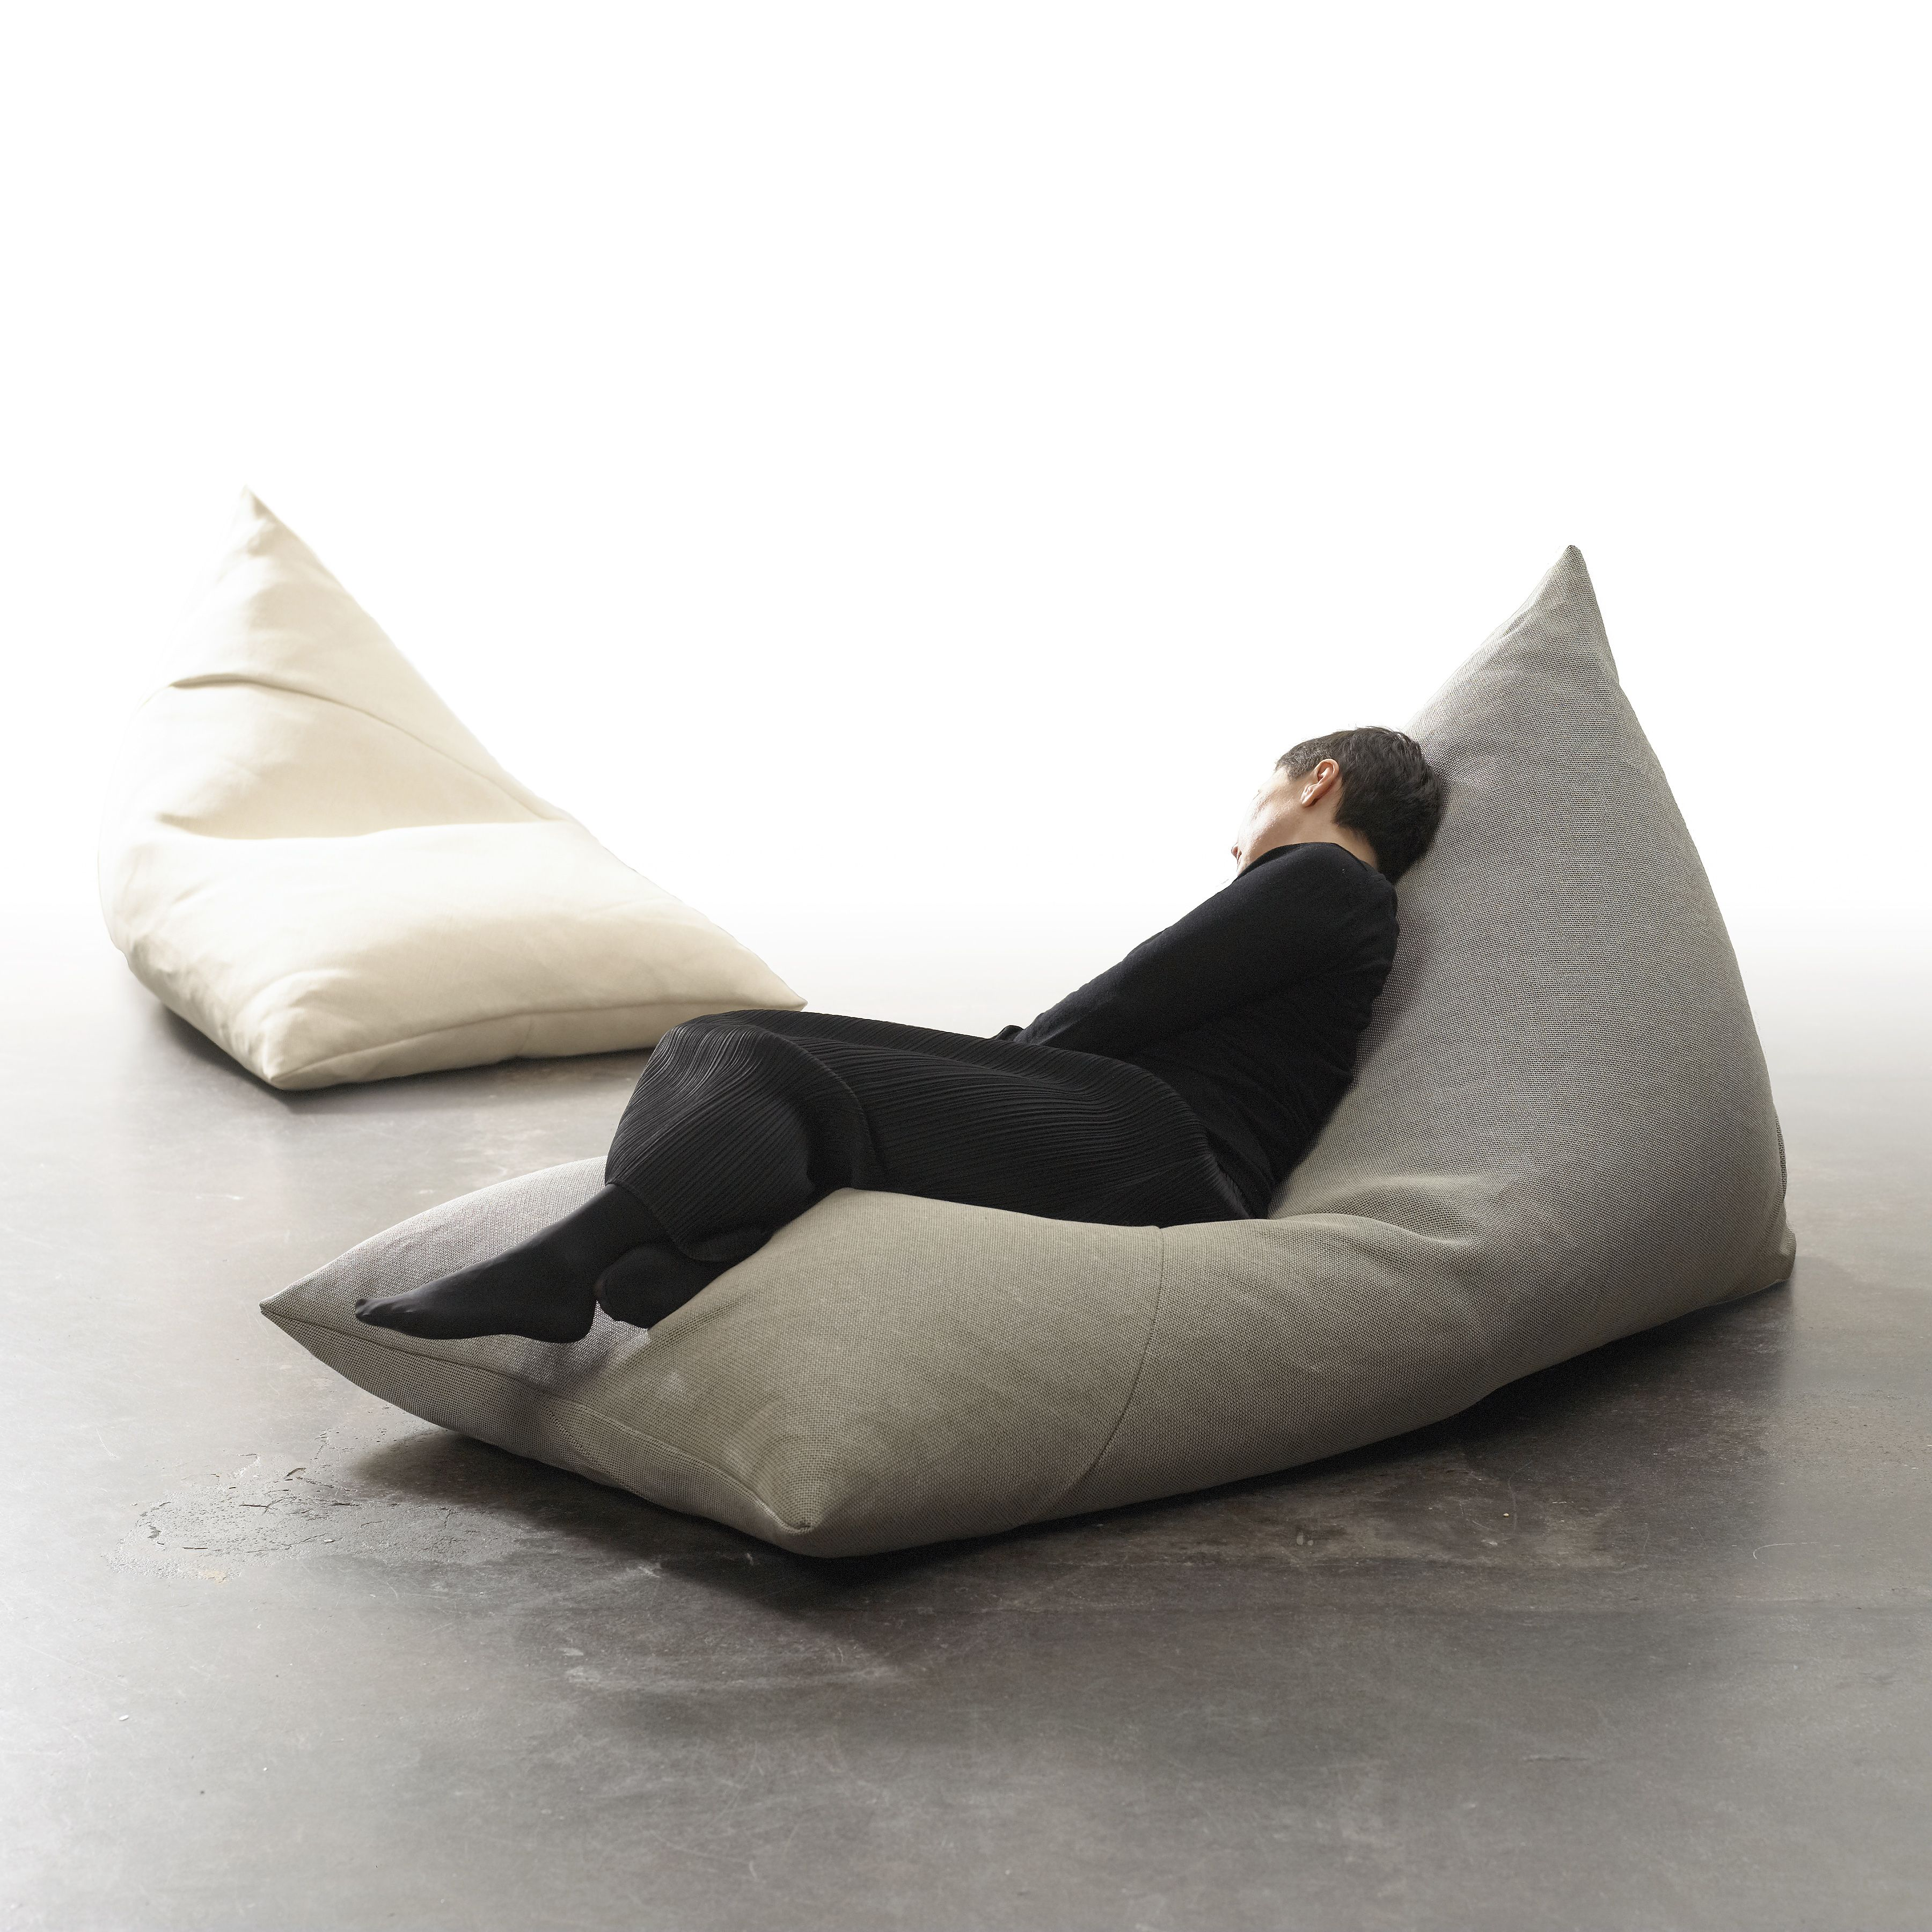 Soft But Sturdy Roo Lounge Chair Bean Bag Chair Is Designed For Casual Relaxed Seating Roo Is Longer And Bean Bag Chair Lounge Design Lounge Chair Design